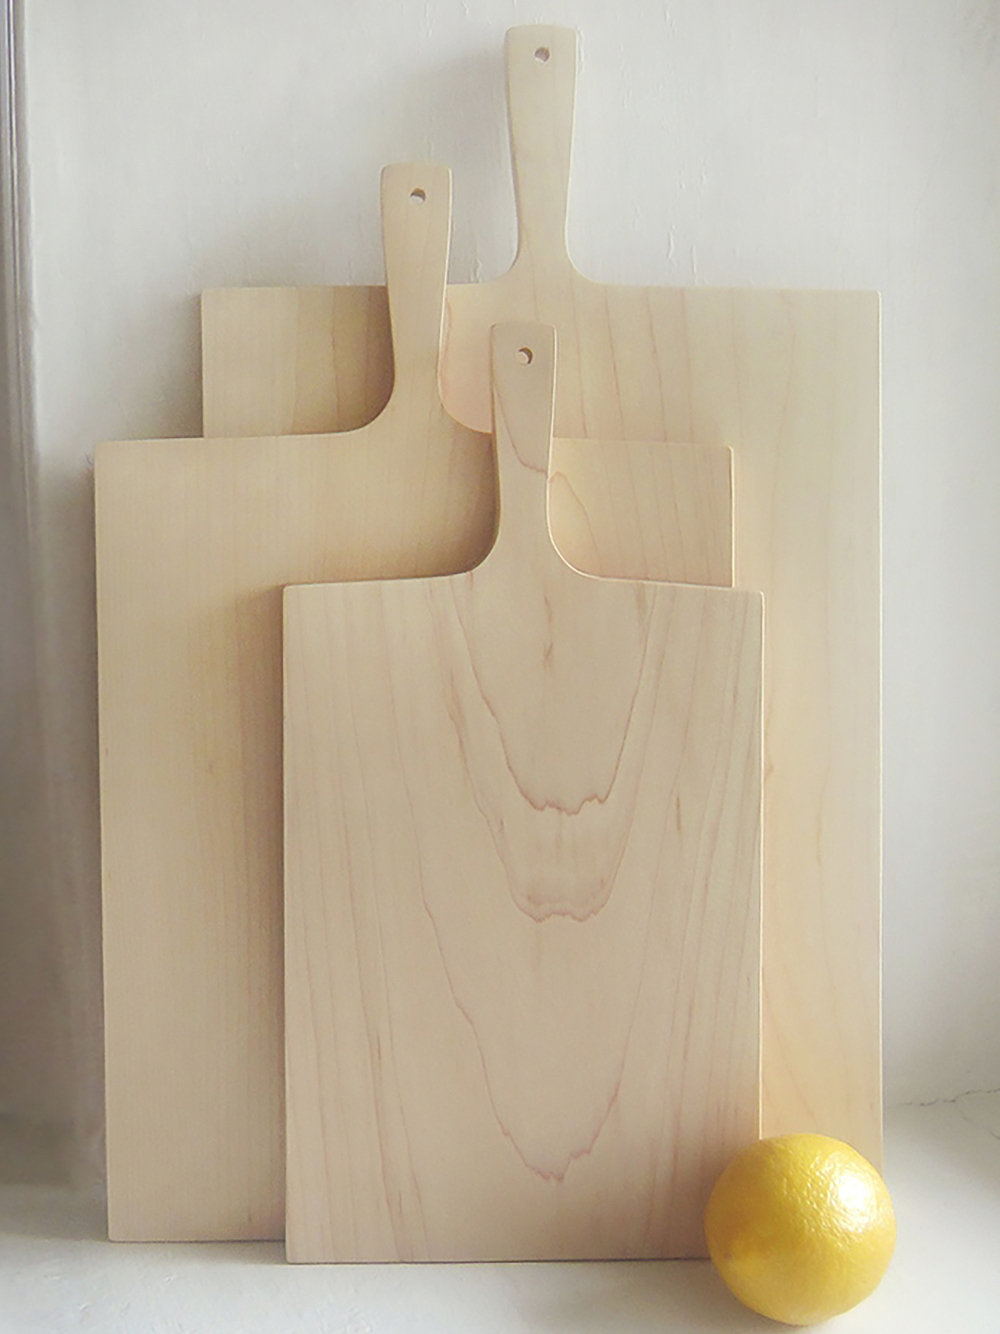 Cutting Boards2.jpg